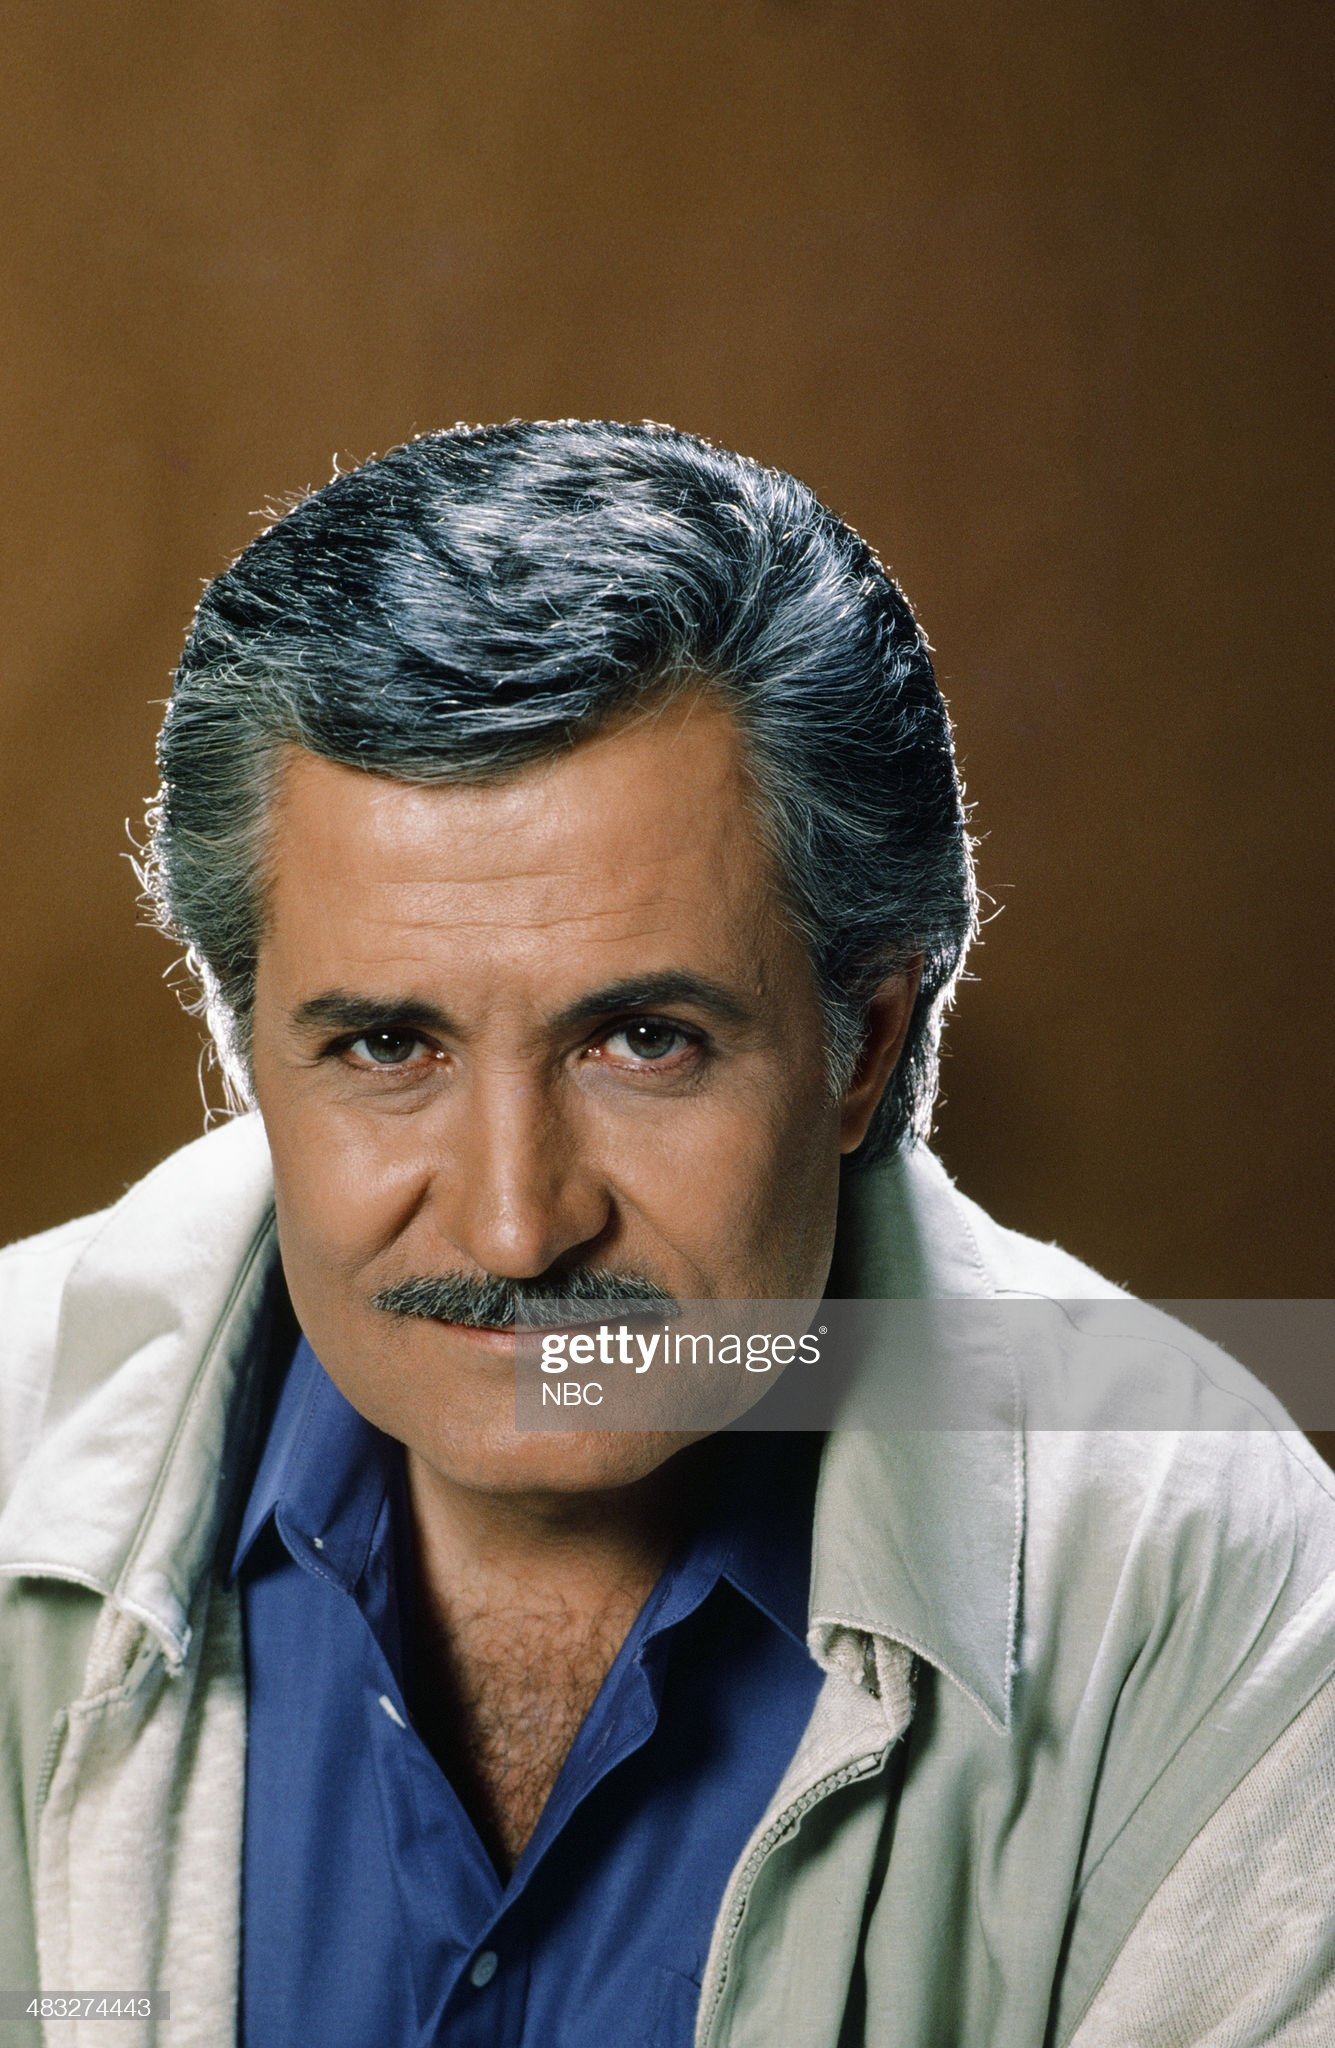 pictured-john-aniston-as-victor-kiriakis-picture-id483274443